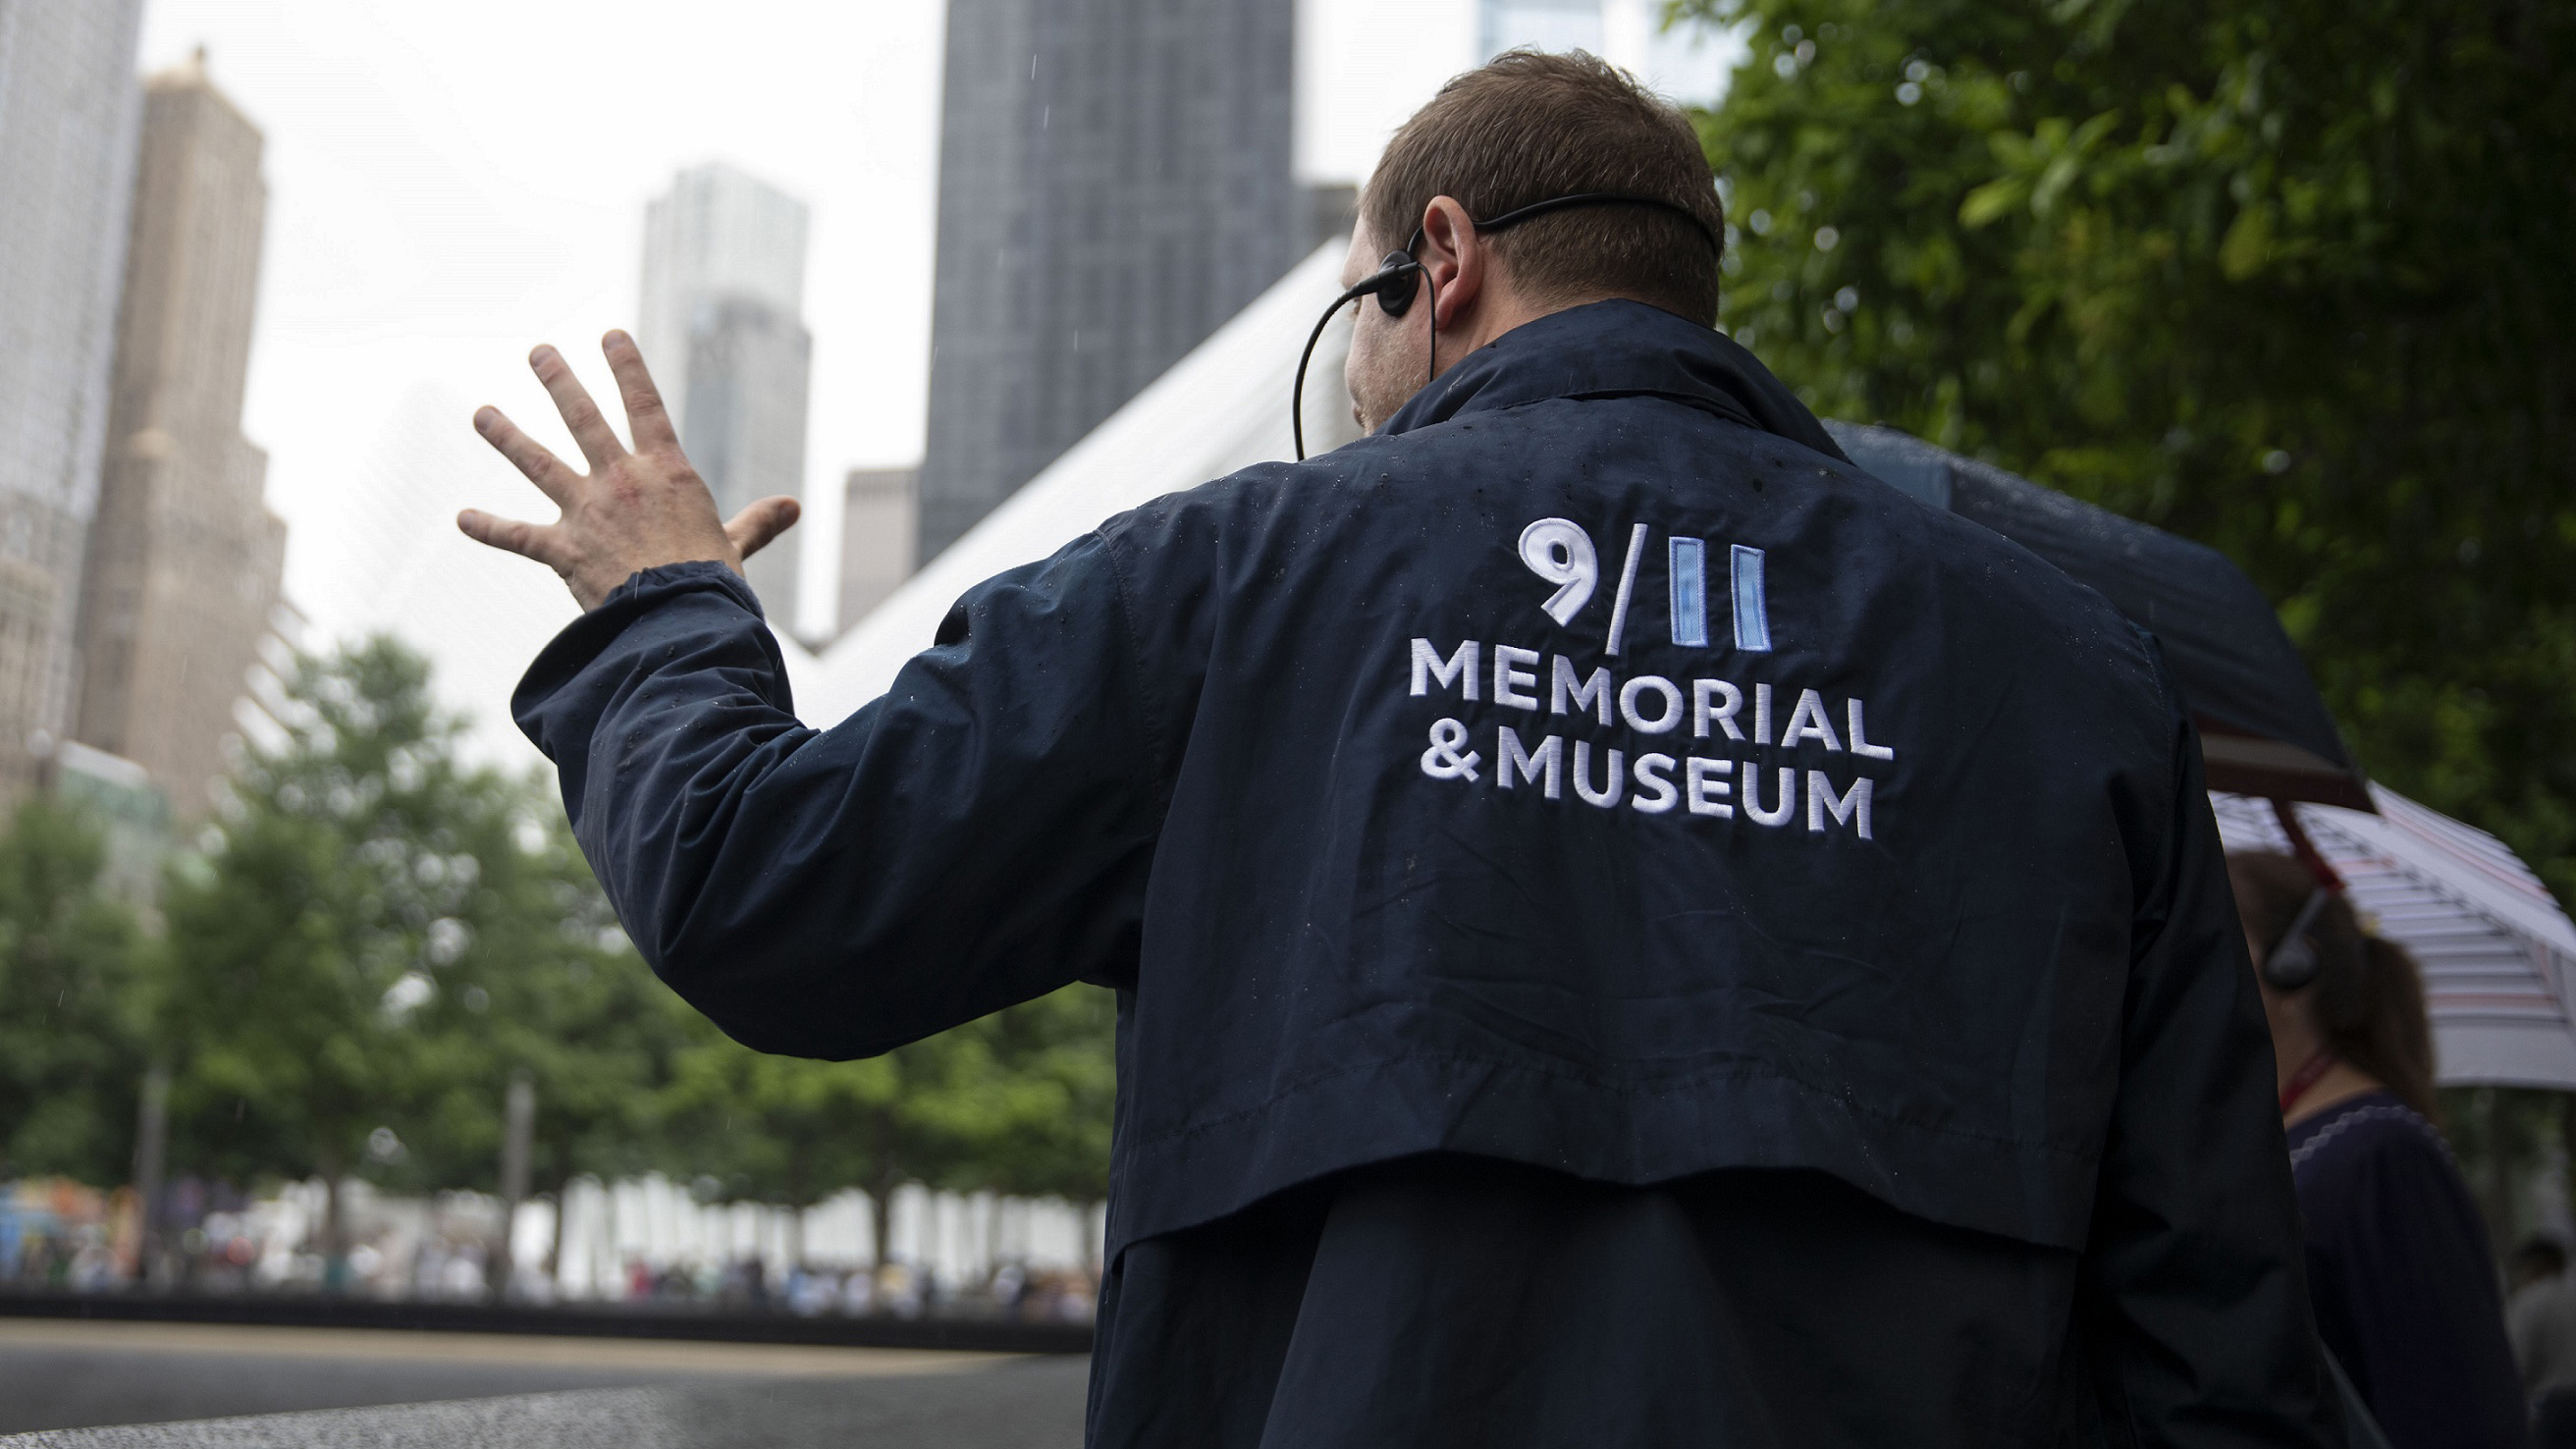 A tour guide in a blue 9/11 Memorial & Museum jacket faces away and motions with his left hand as he shows visitors a reflecting pool at the Memorial.